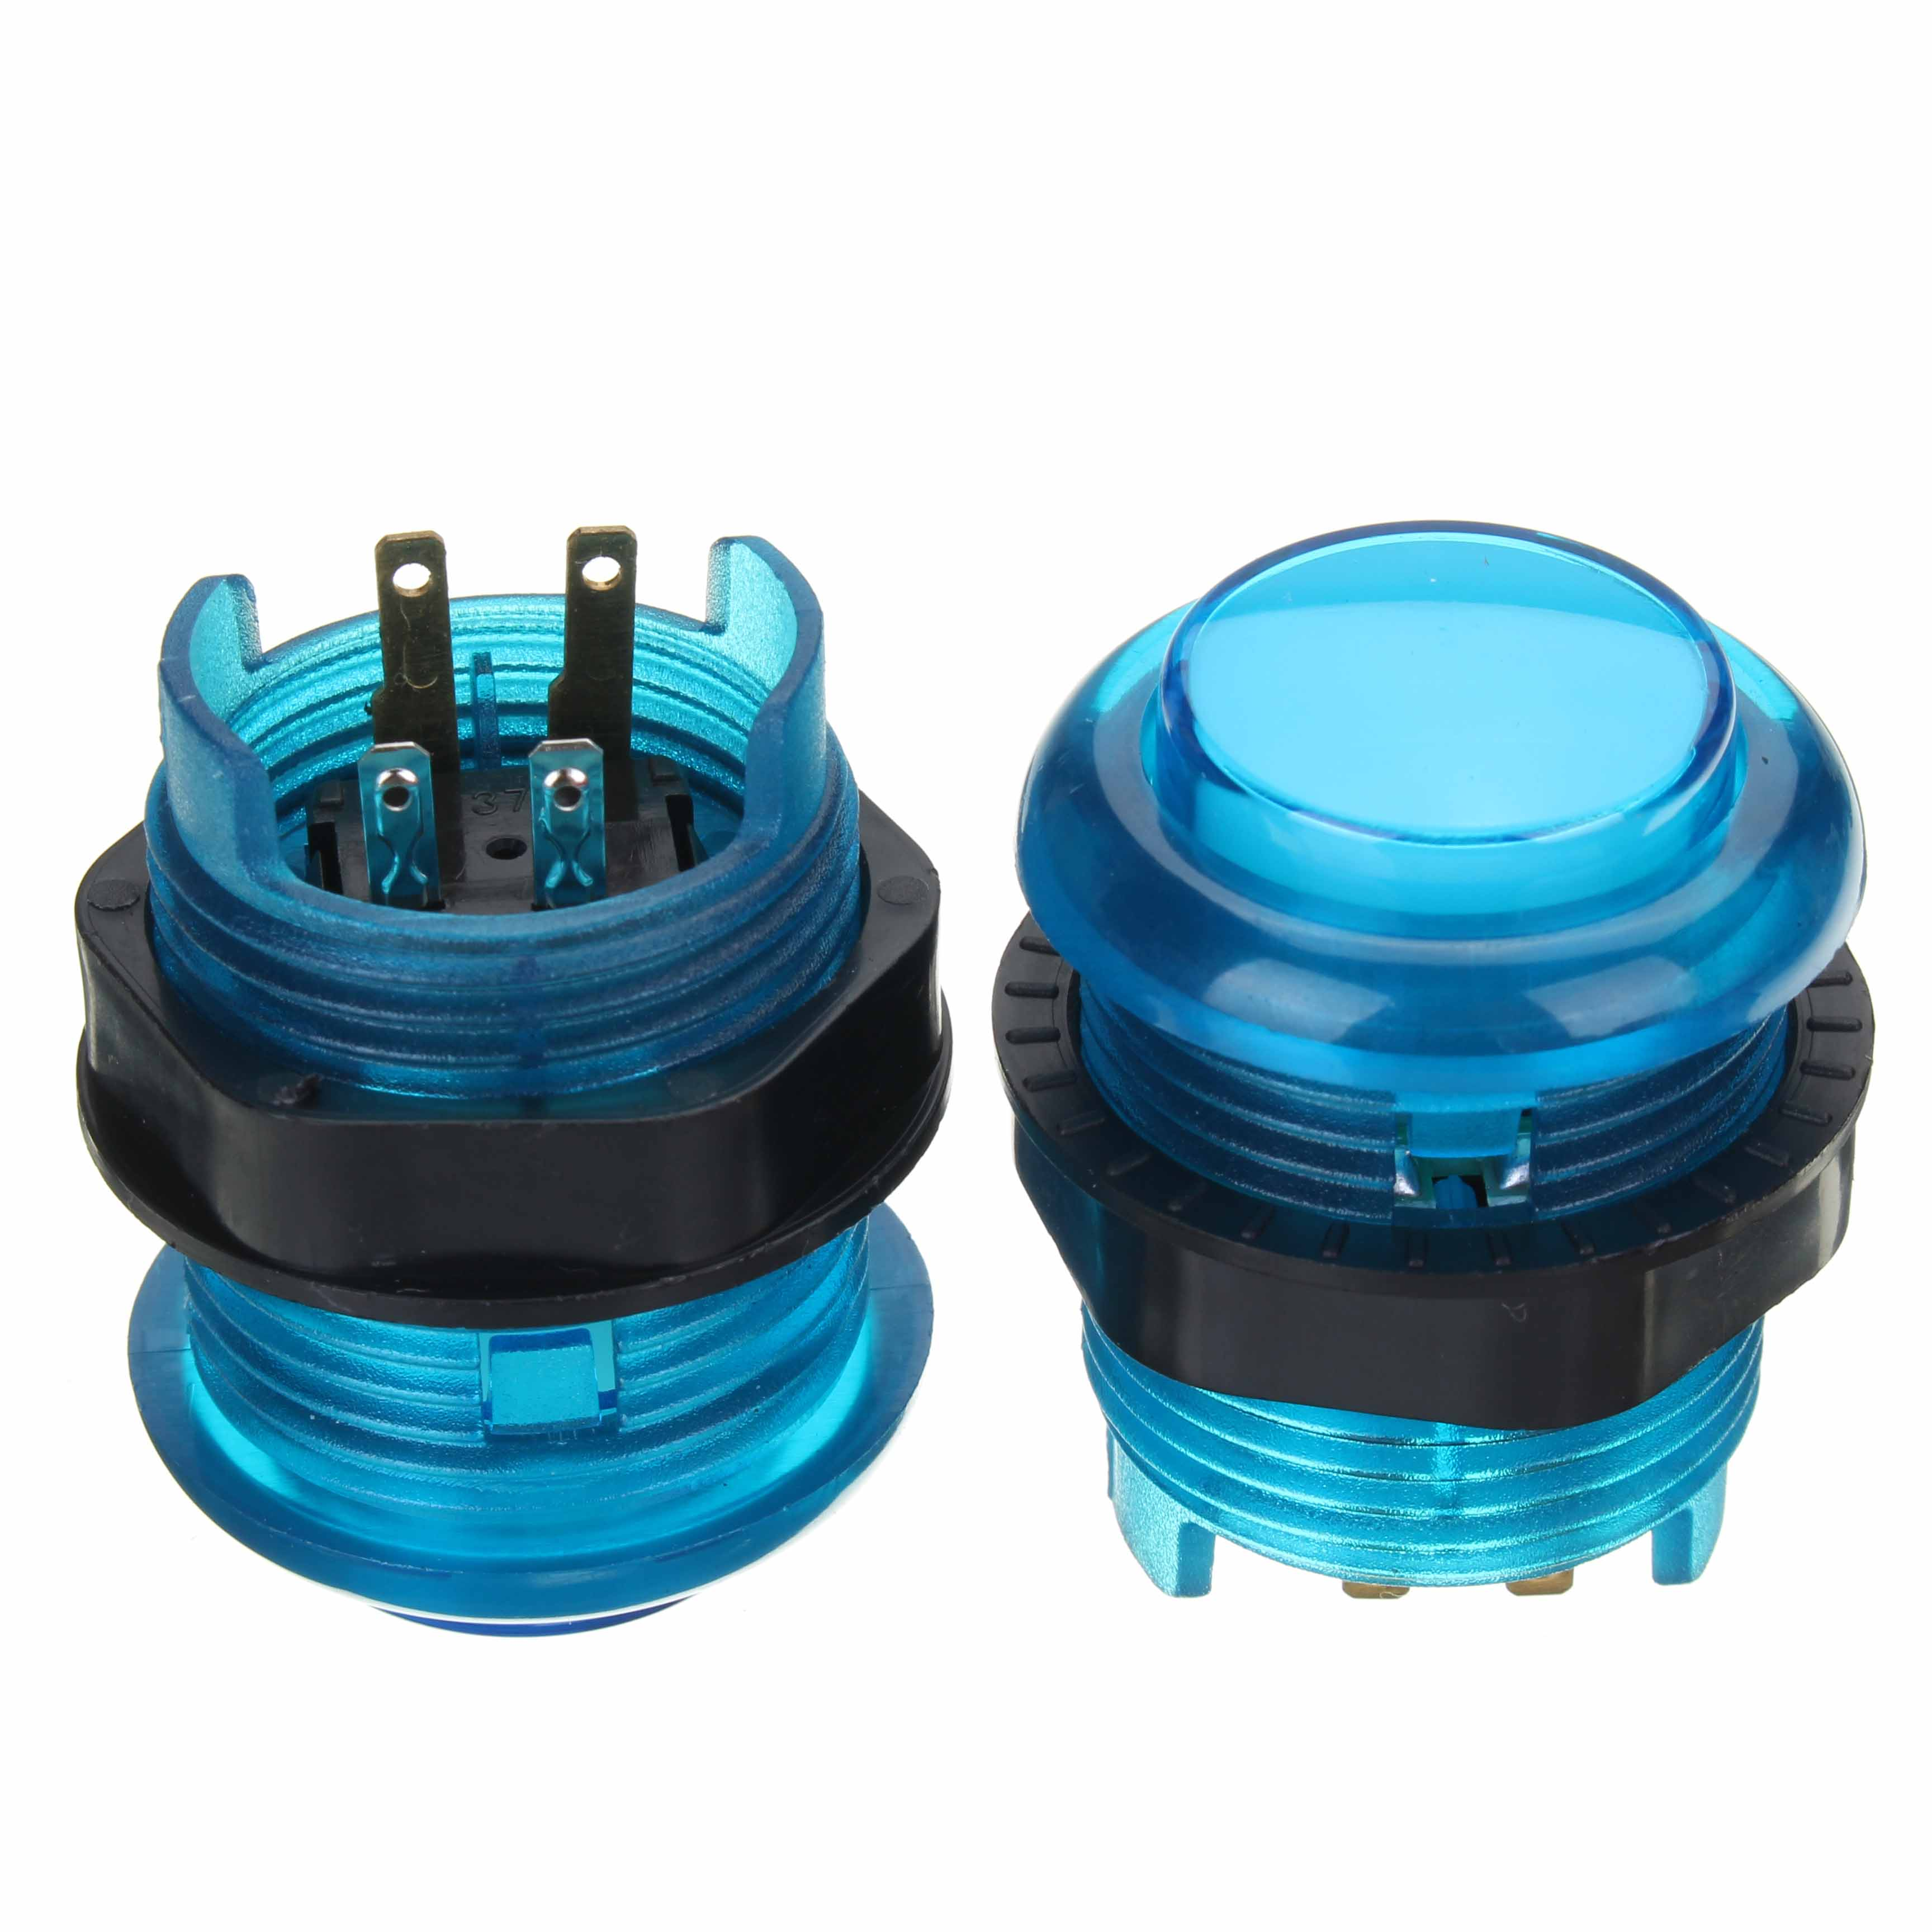 Blue Red LED Push Button Dual Joystick LED Encoder Light Cable Kit for Arcade Game Controller DIY